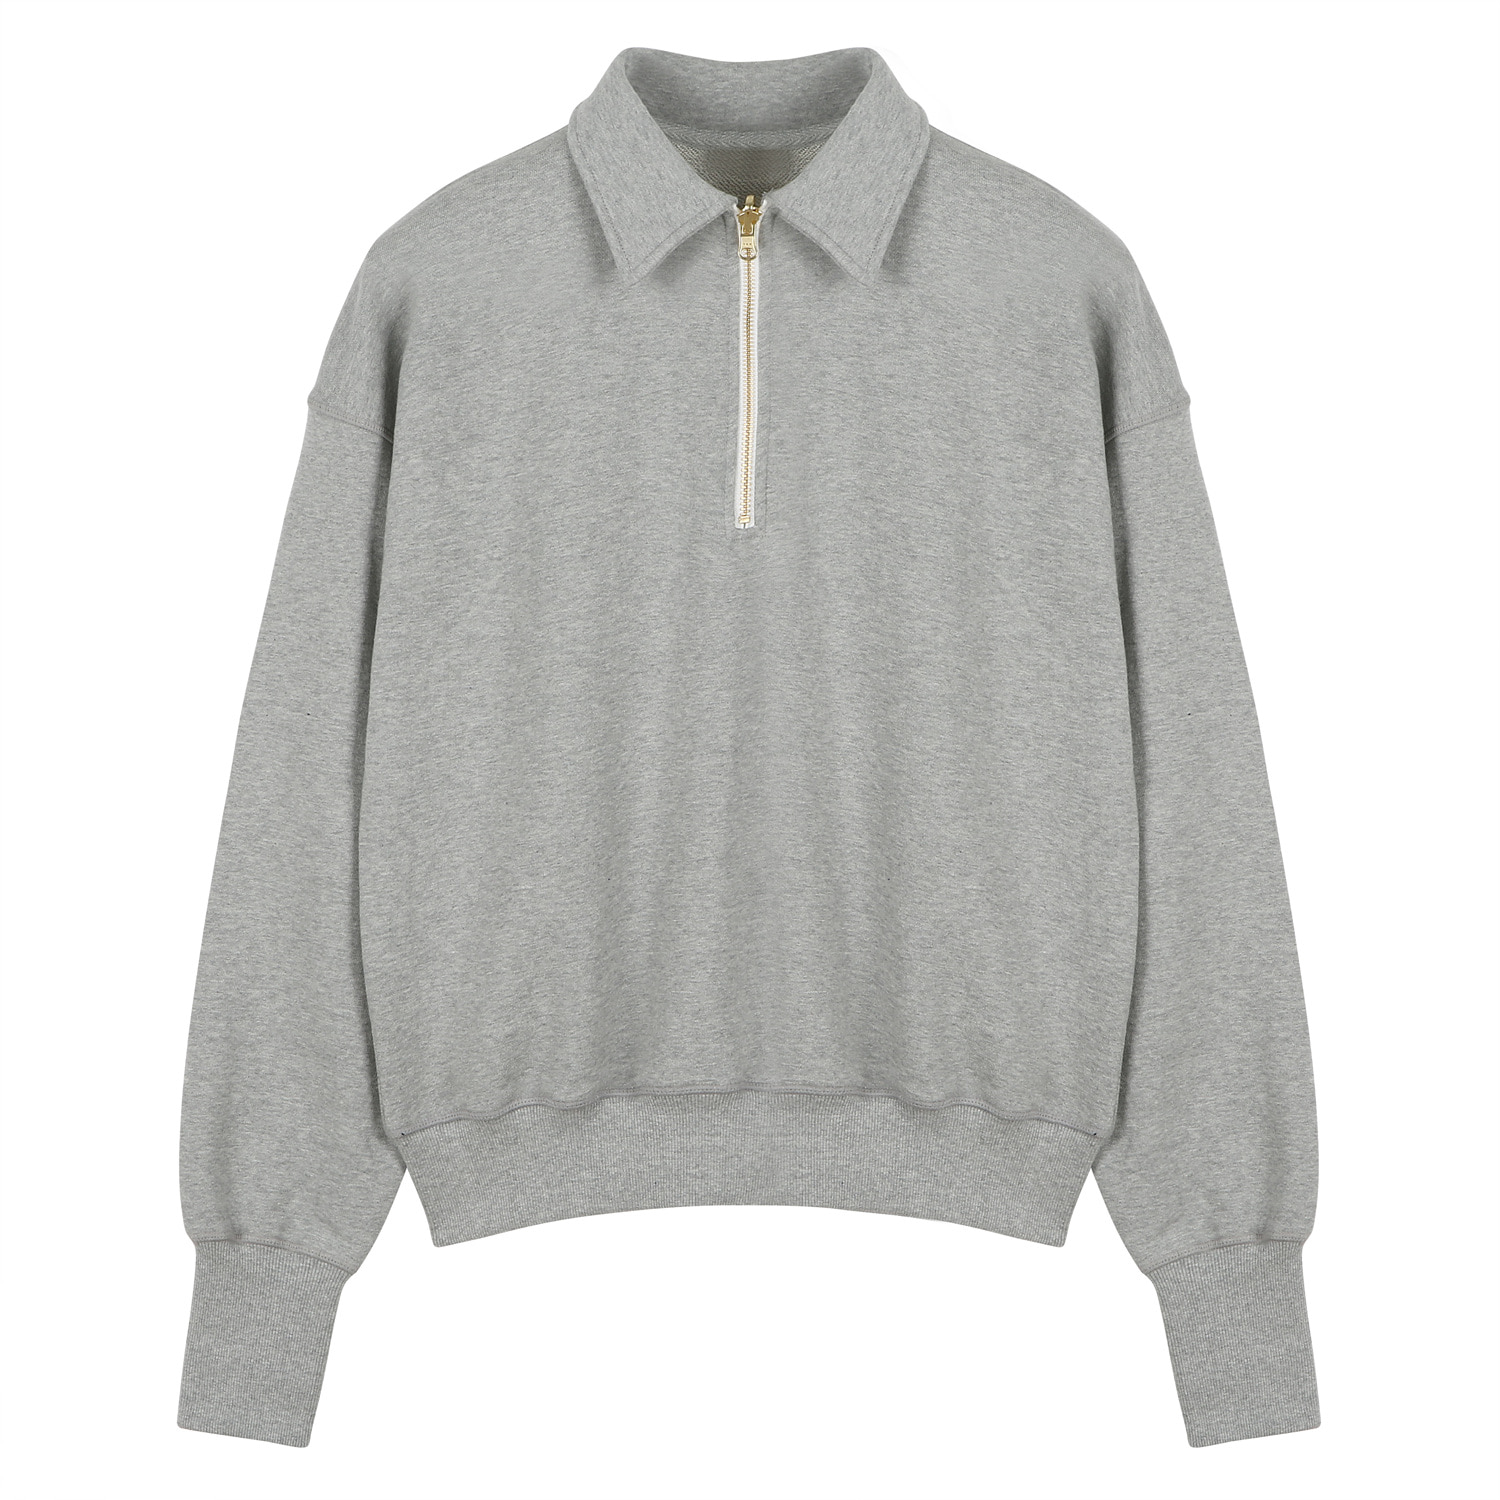 ORE COTTON 001 Zip-up pullover L.grey